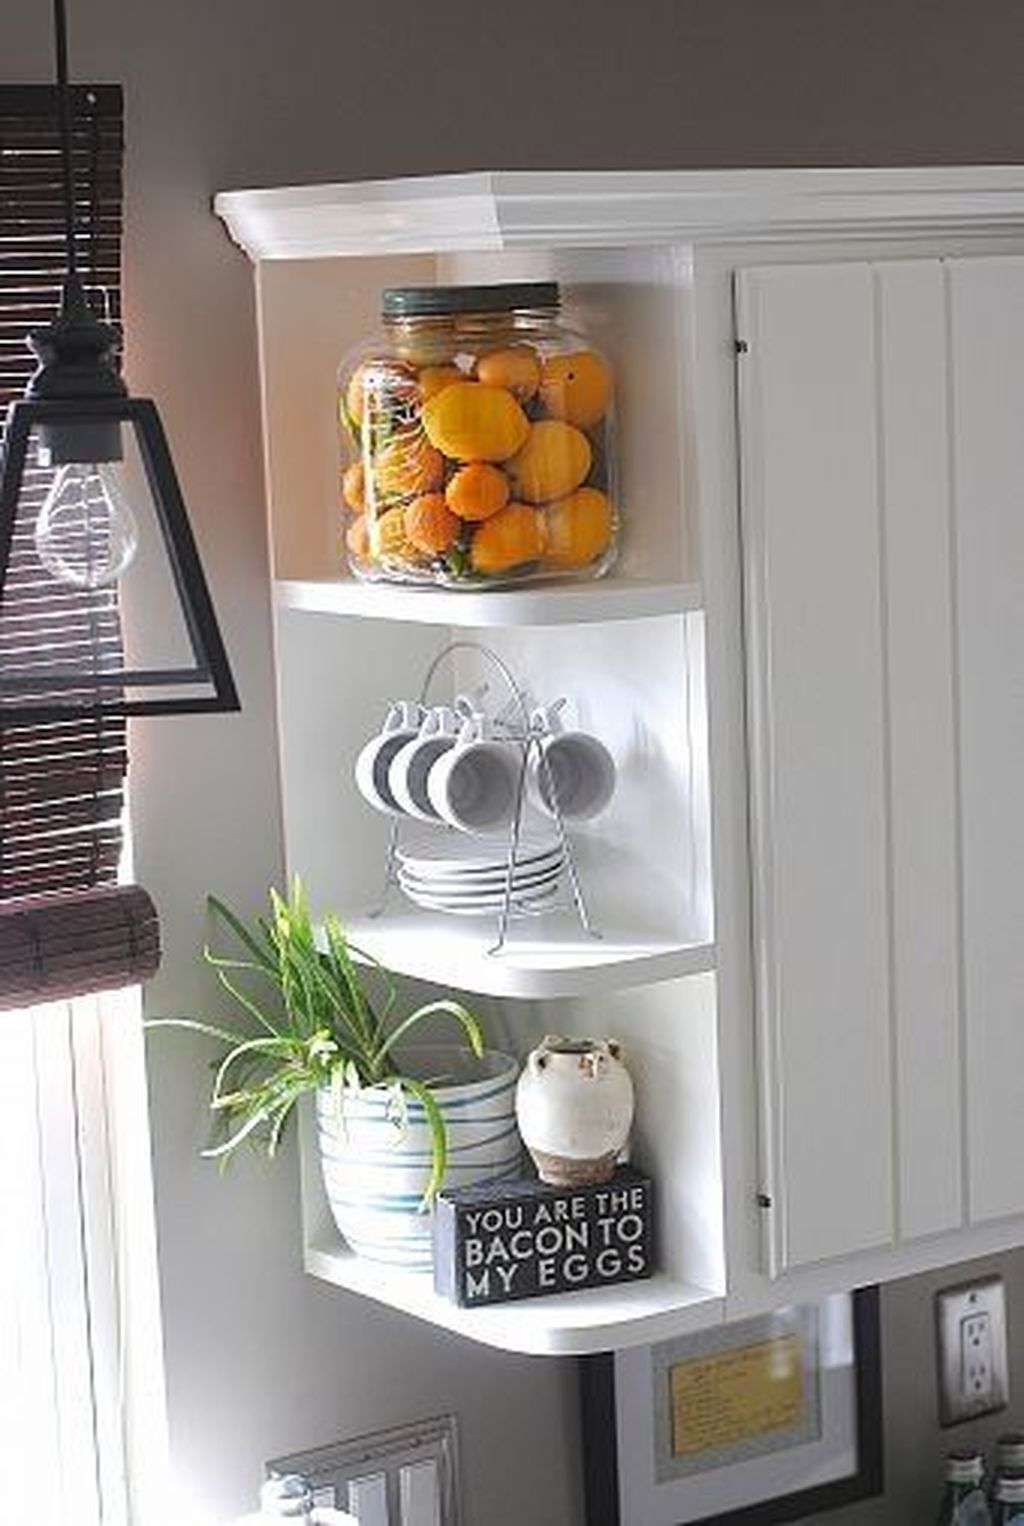 48 unique diy kitchen decorating ideas for your on awesome modern kitchen design ideas recommendations for you id=35037